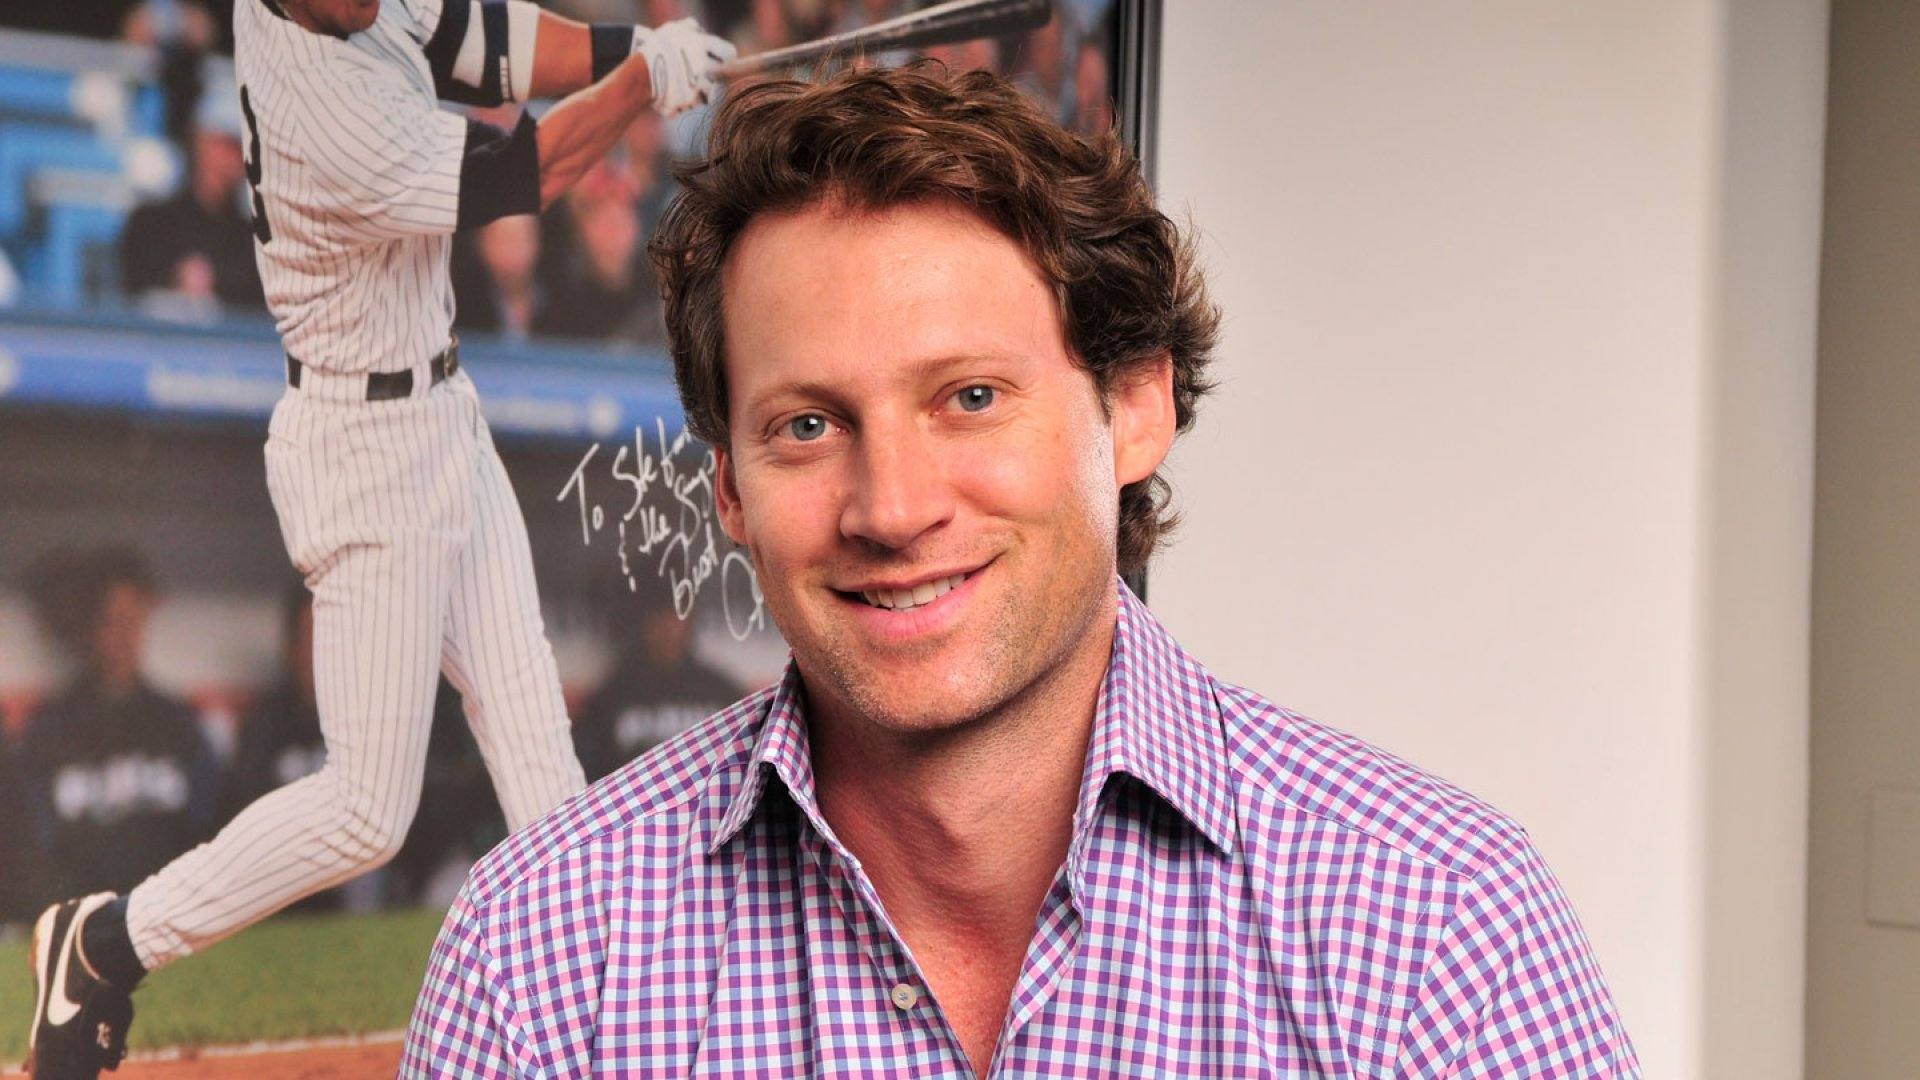 """""""I bought [SportsMemorabilia.com] and then realized that I know absolutely nothing about sports,"""" says Jesse Stein (above), who brought on Stefan Tesoriero (pictured below) as CEO and became the non-executive chairman."""